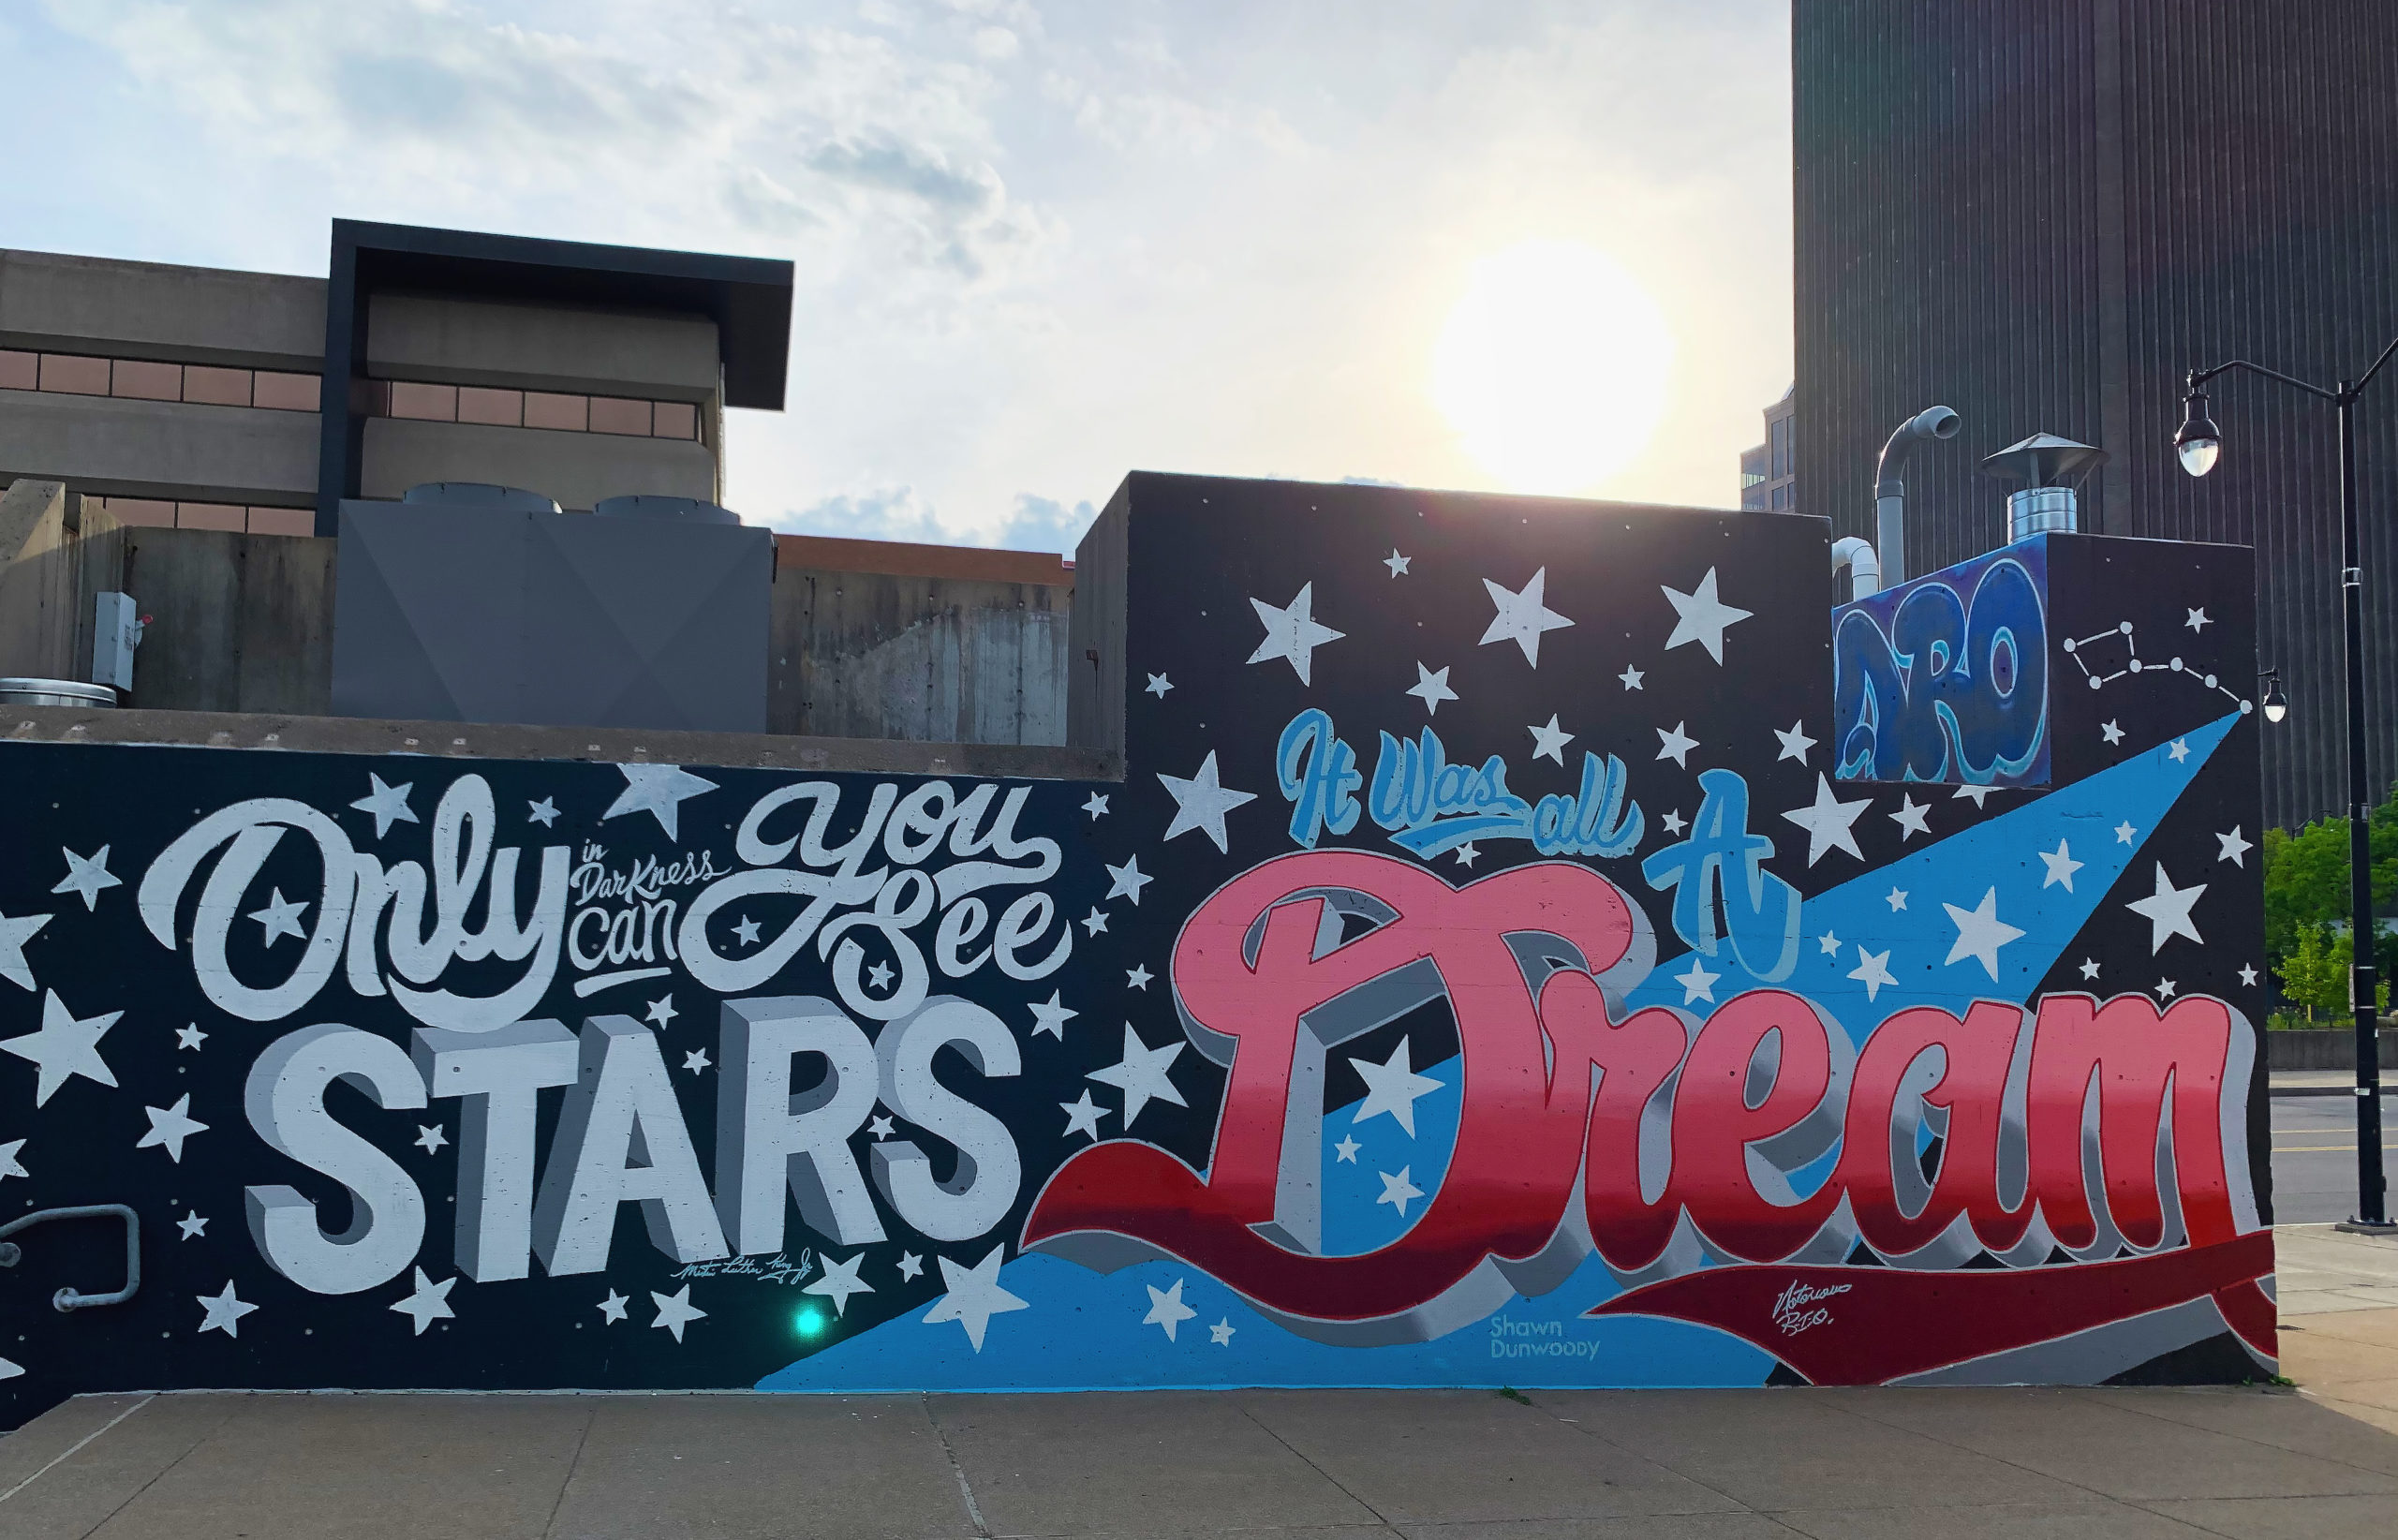 mural by shawn dunwoody quoting martin luther king jr and biggie smalls